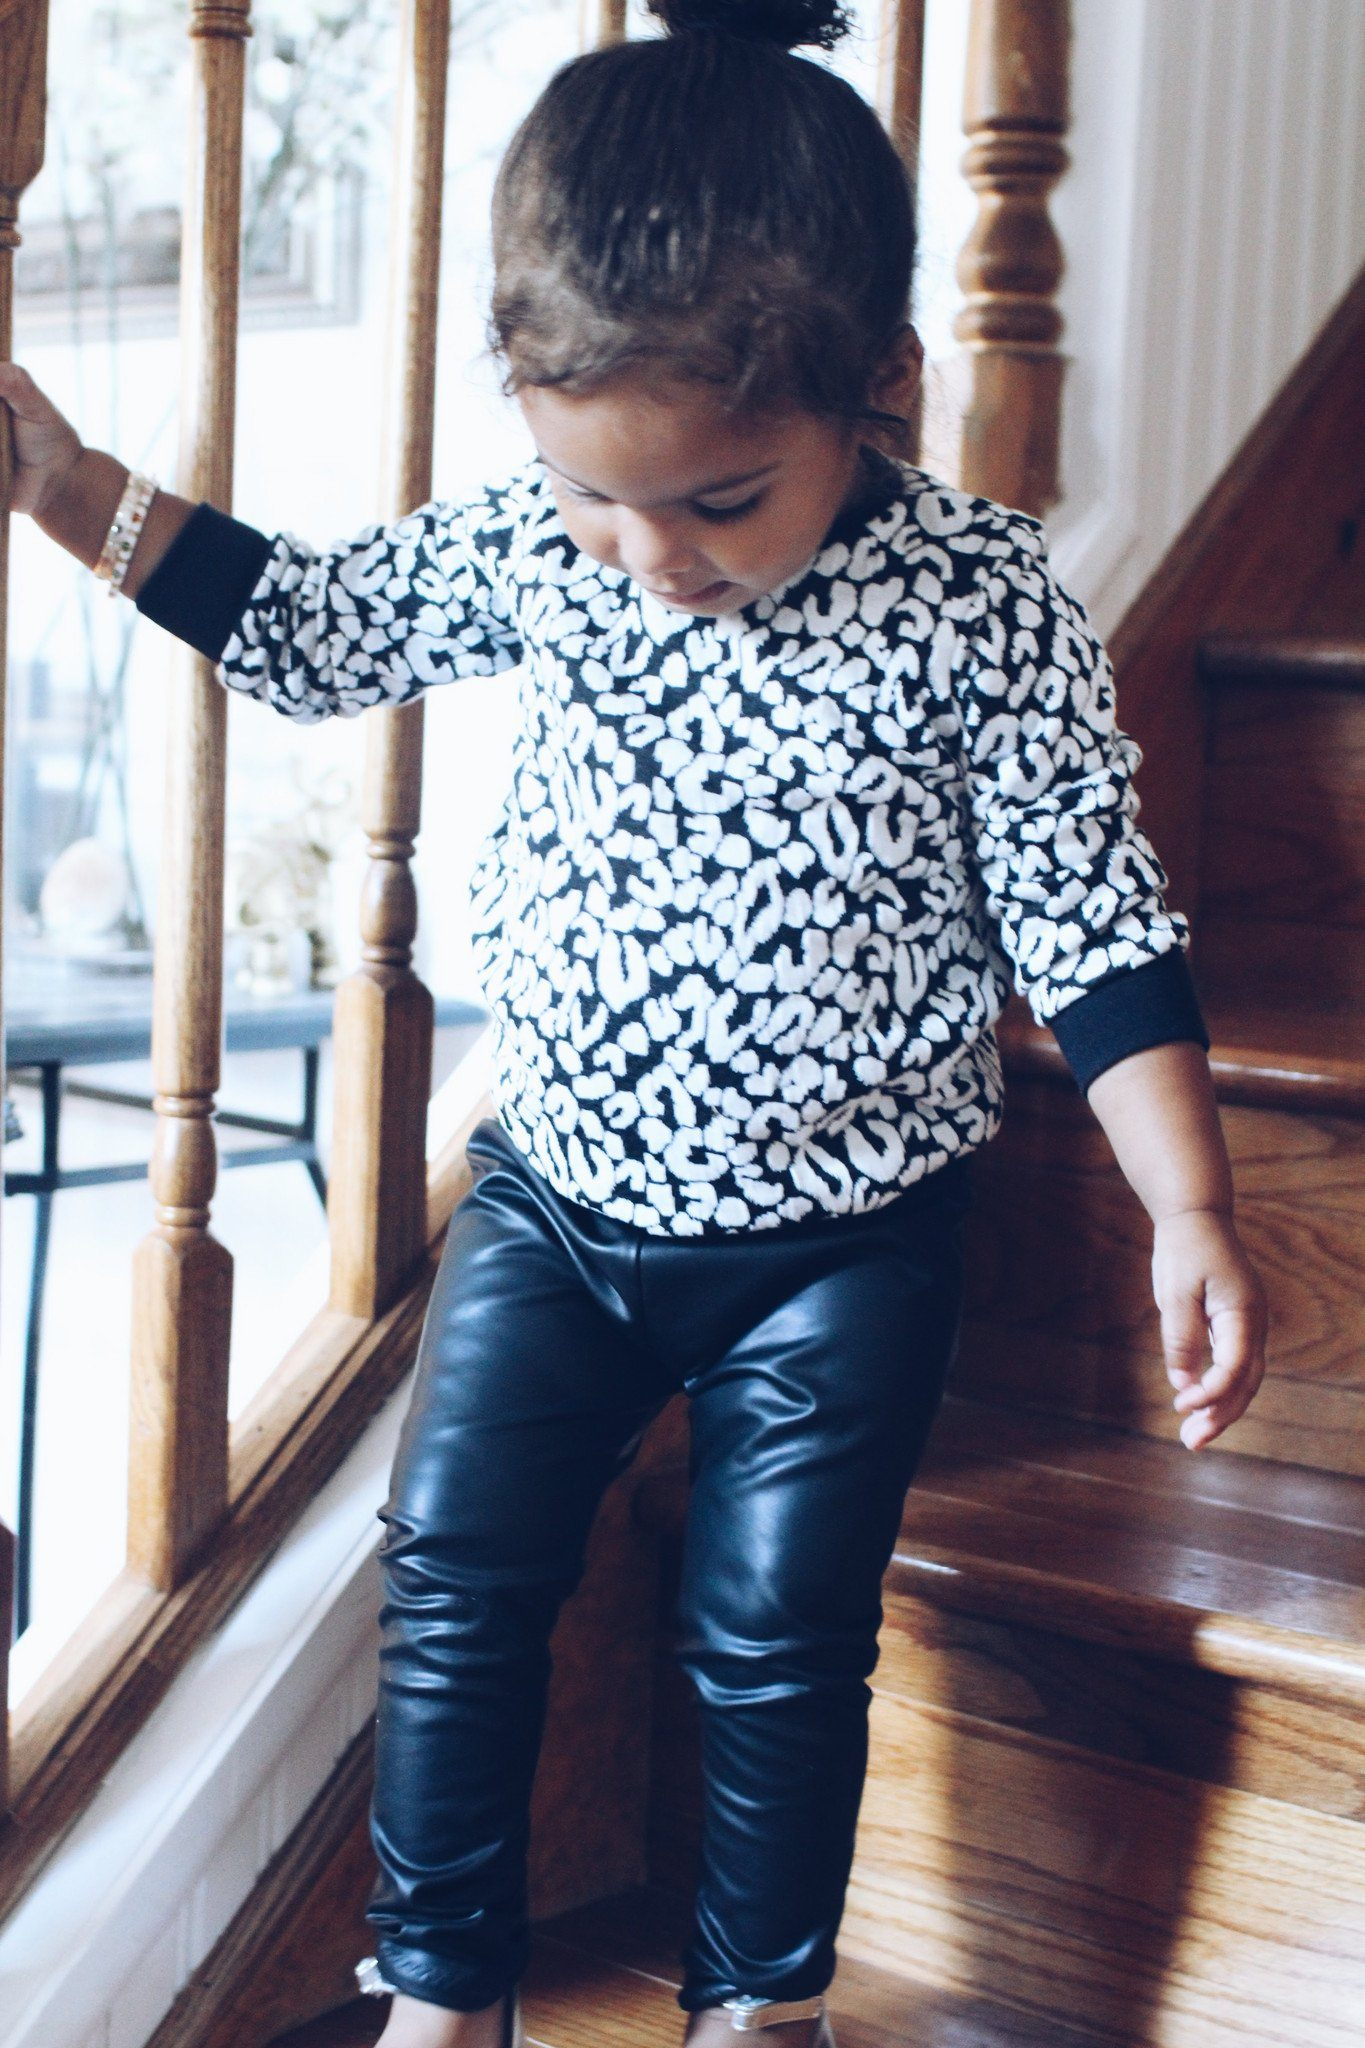 Leggings - Toddler Leather Leggings For Fall